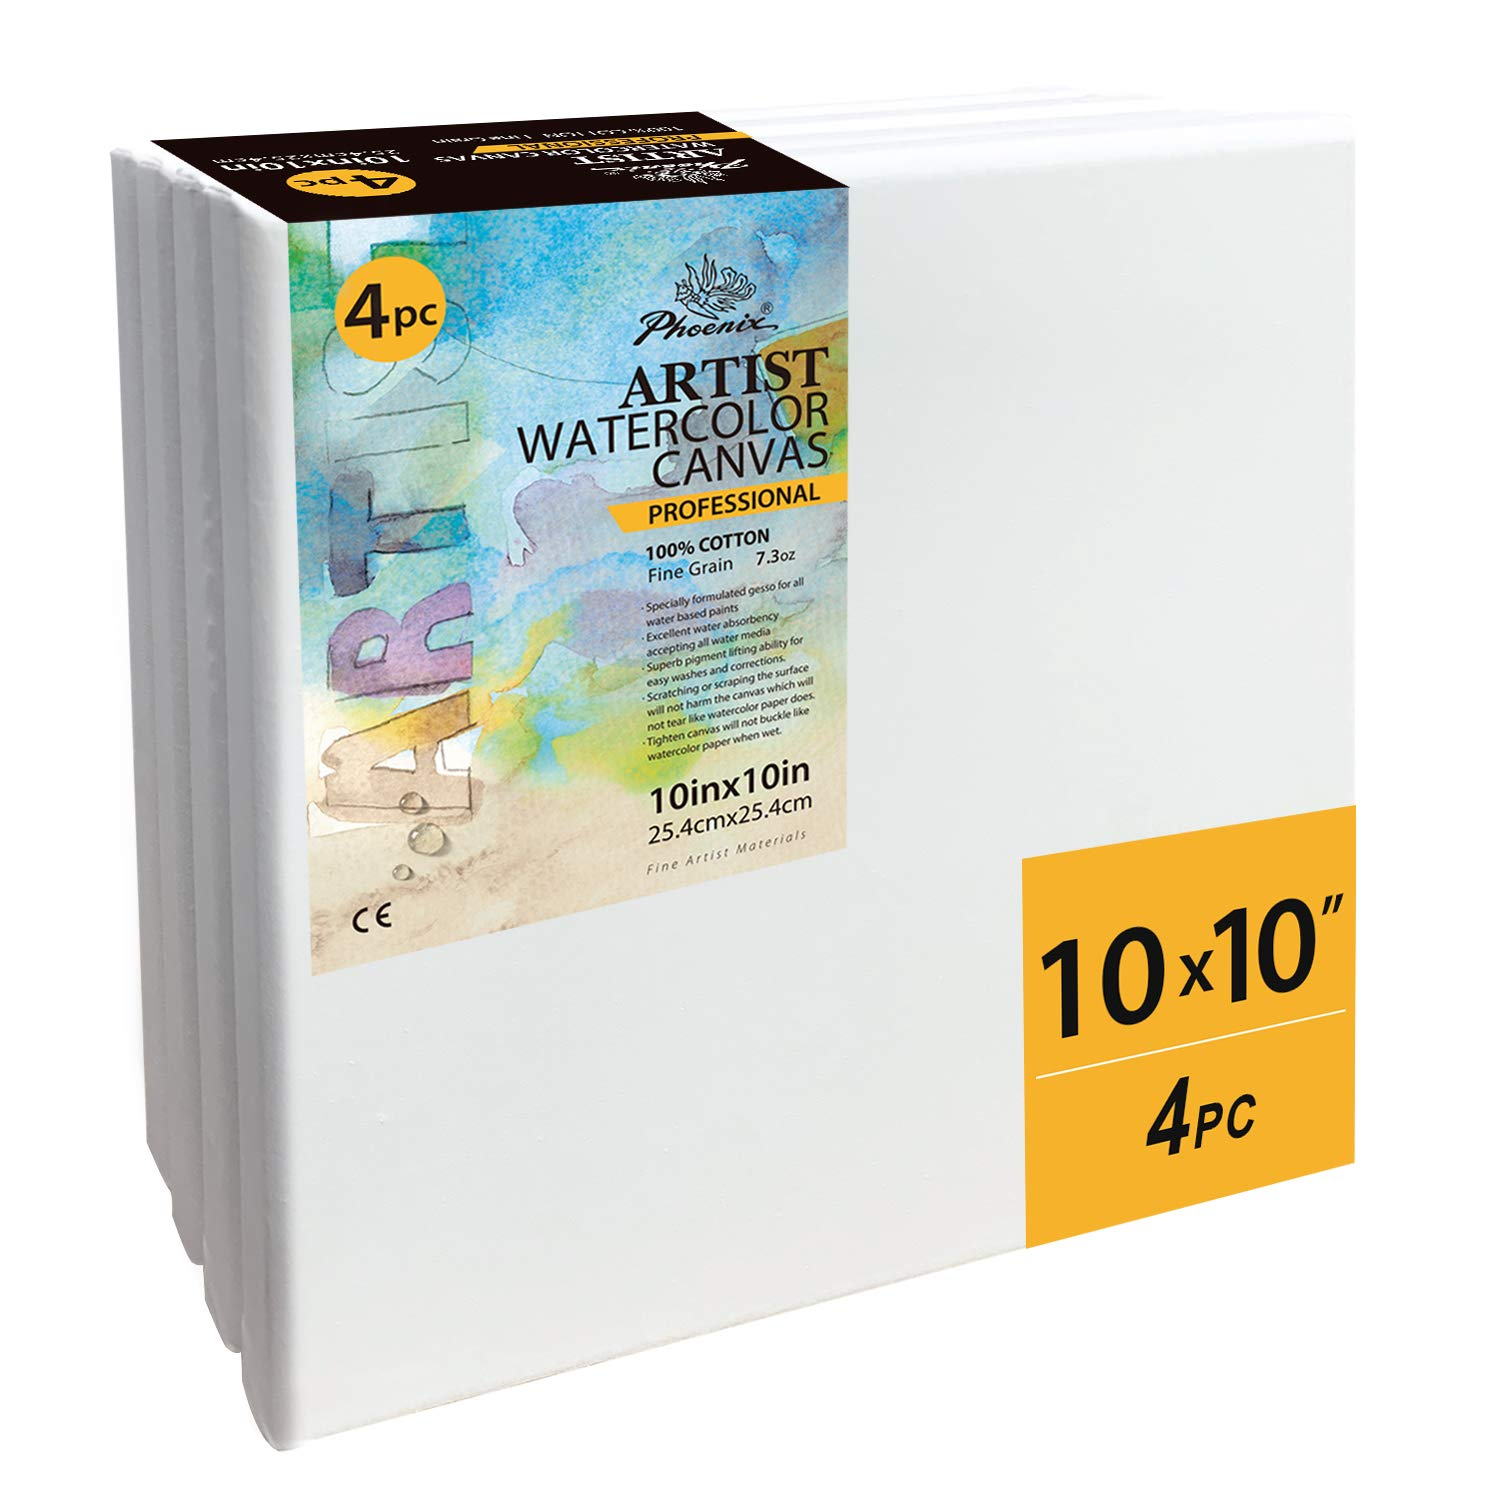 10x10 Inch//4 Pack 5//7 Inch Profile Professional Artist Painting Canvas for Water Soluble Paints PHOENIX Stretched Watercolor Canvas